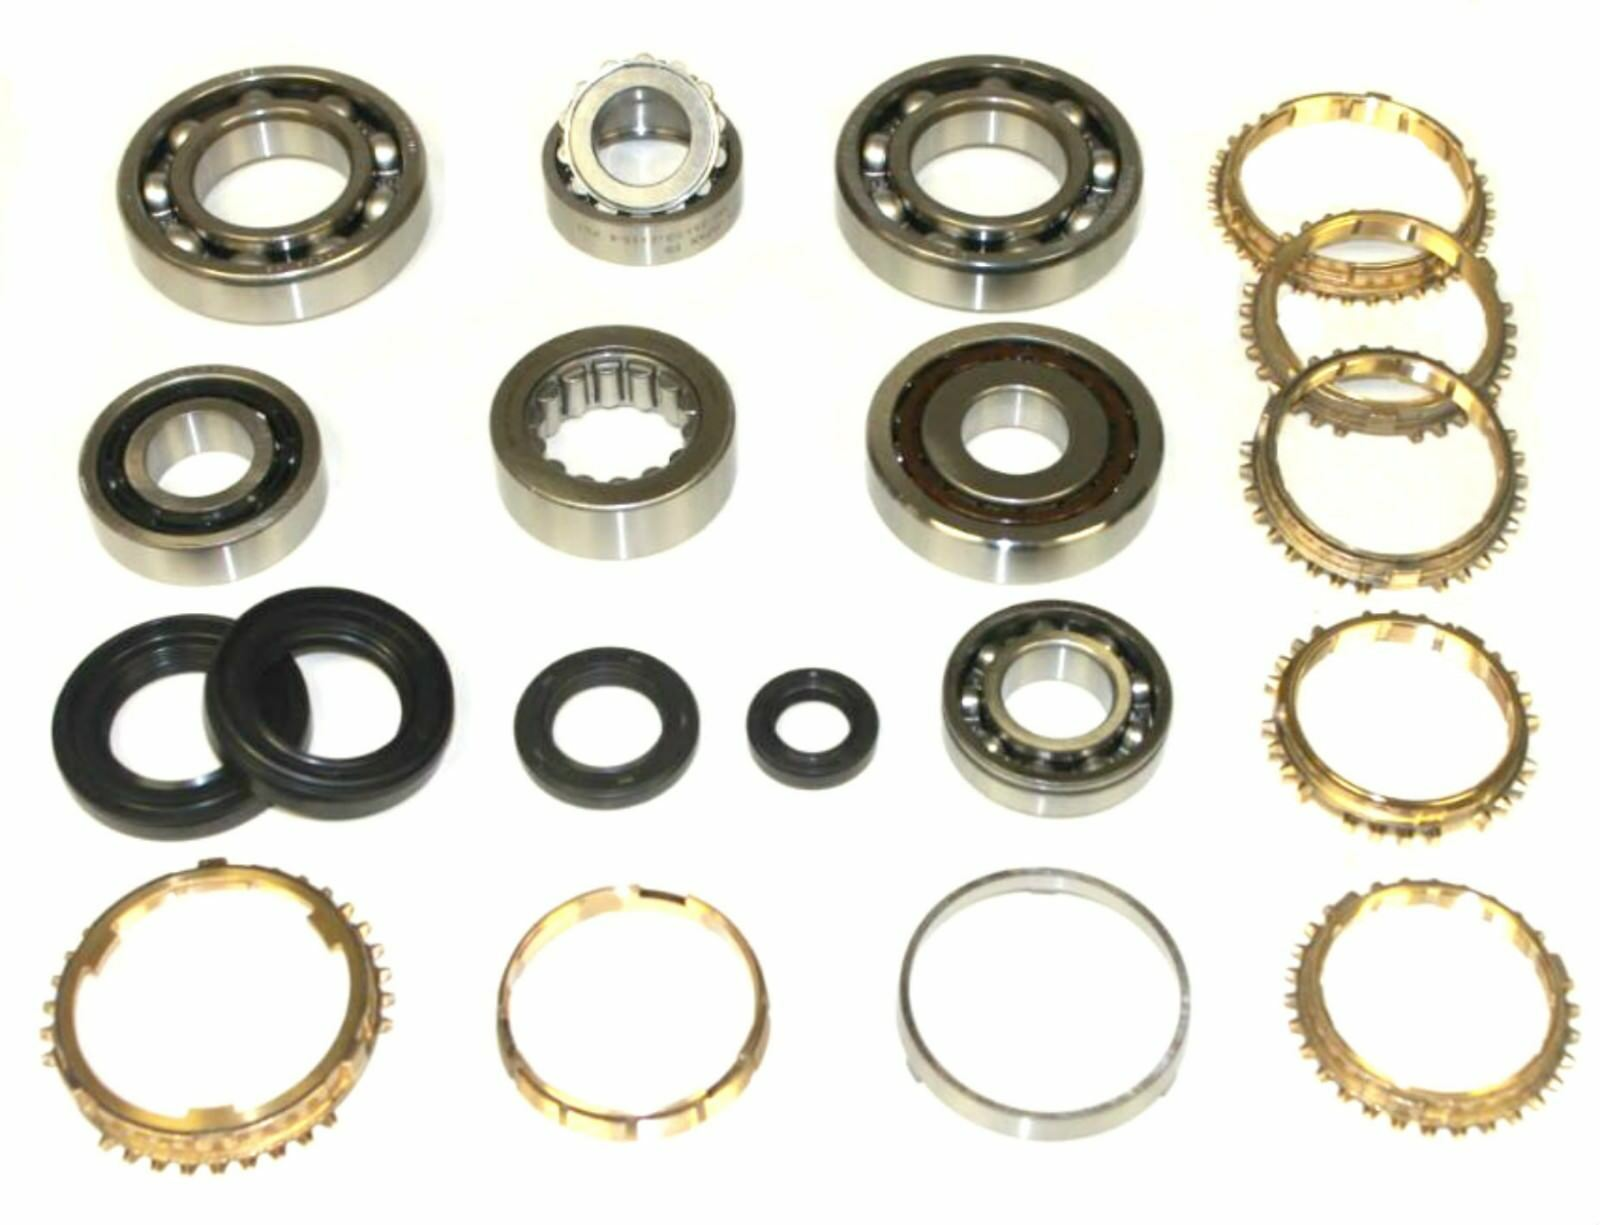 Honda Civic SLW 5 Speed Manual Trans Premium Rebuild Kit, Bearing Kit,  BK499WS 1 of 1Only 1 available ...